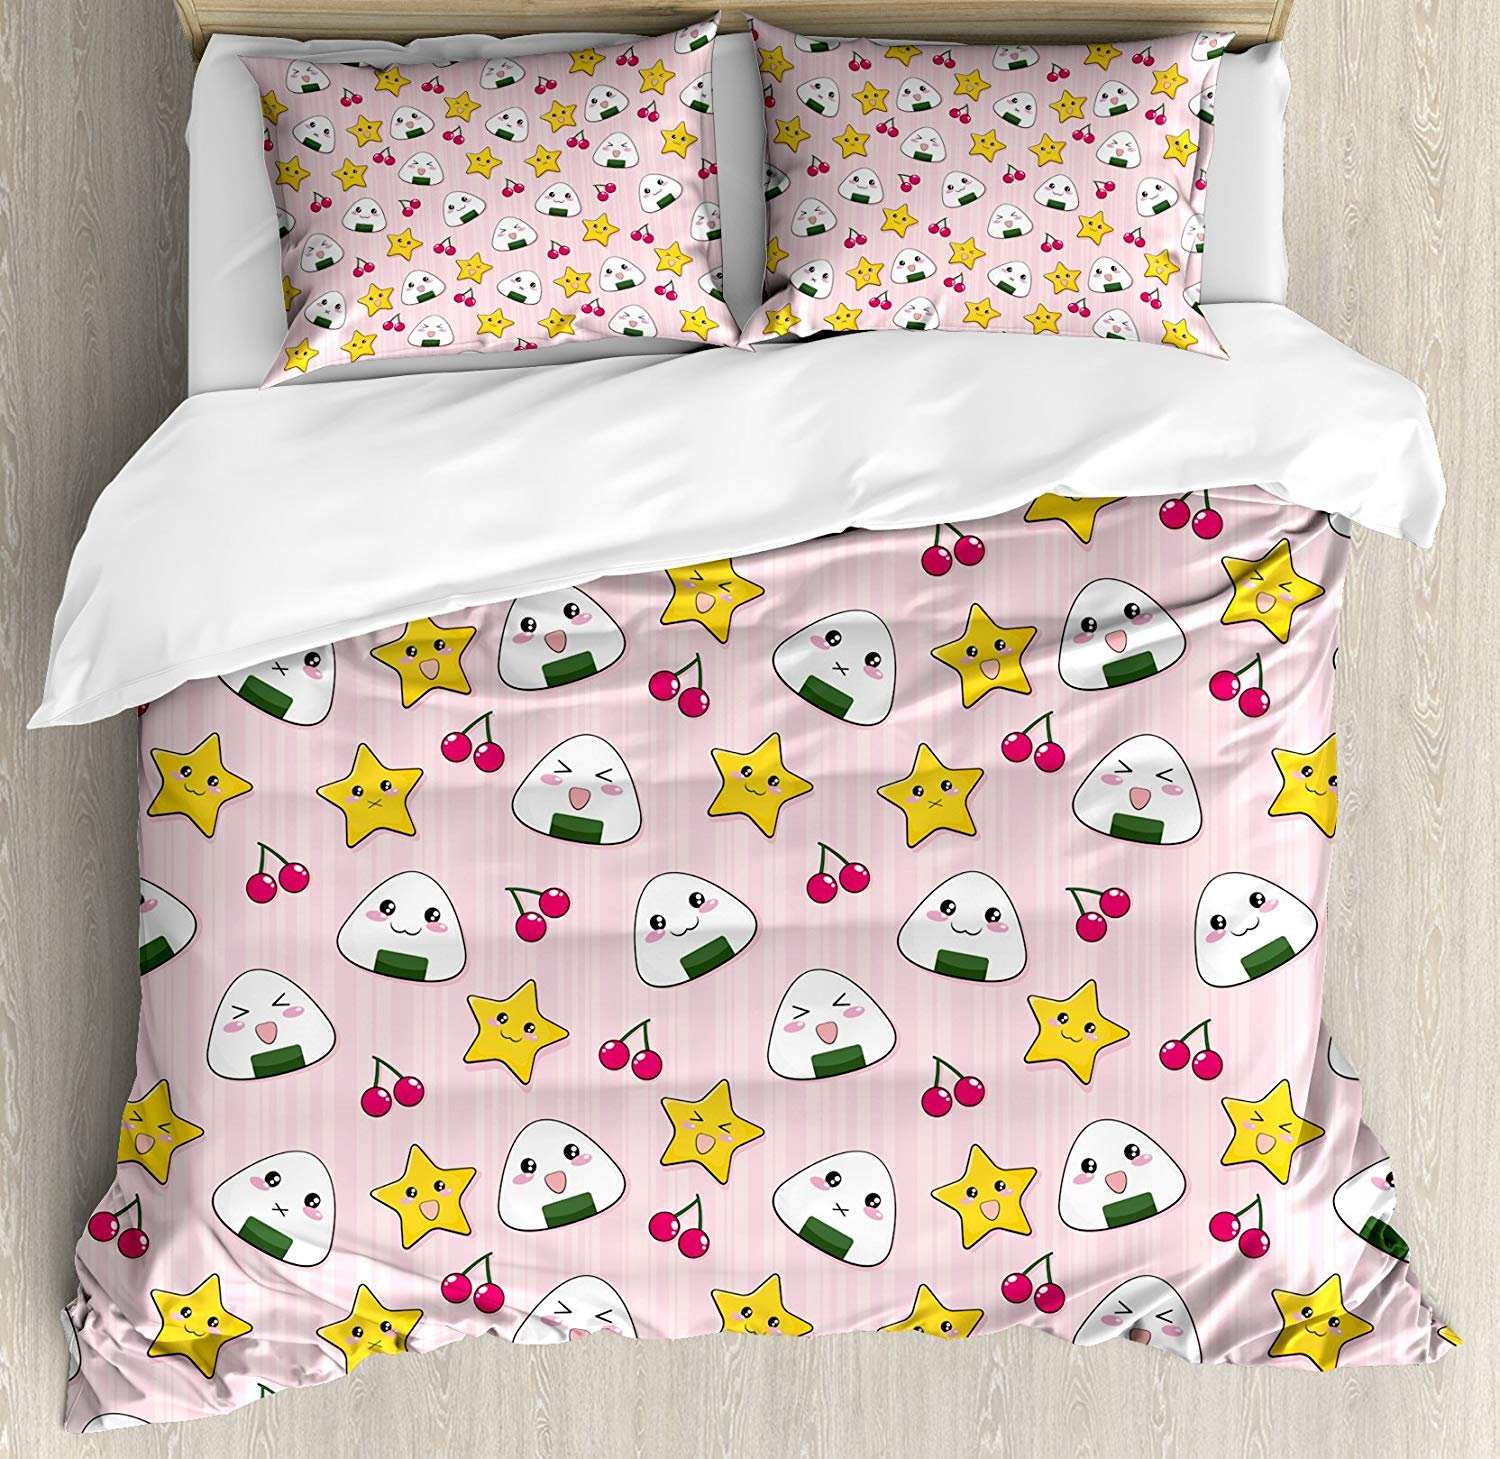 Twin XL Extra Long Bedding Set, Kids Duvet Cover Set, Cute Japanese Food Icons Rice Ball Cherries Asian Kawaii Anime Pattern Design, Cosy House Collection 4 Piece Bedding Sets